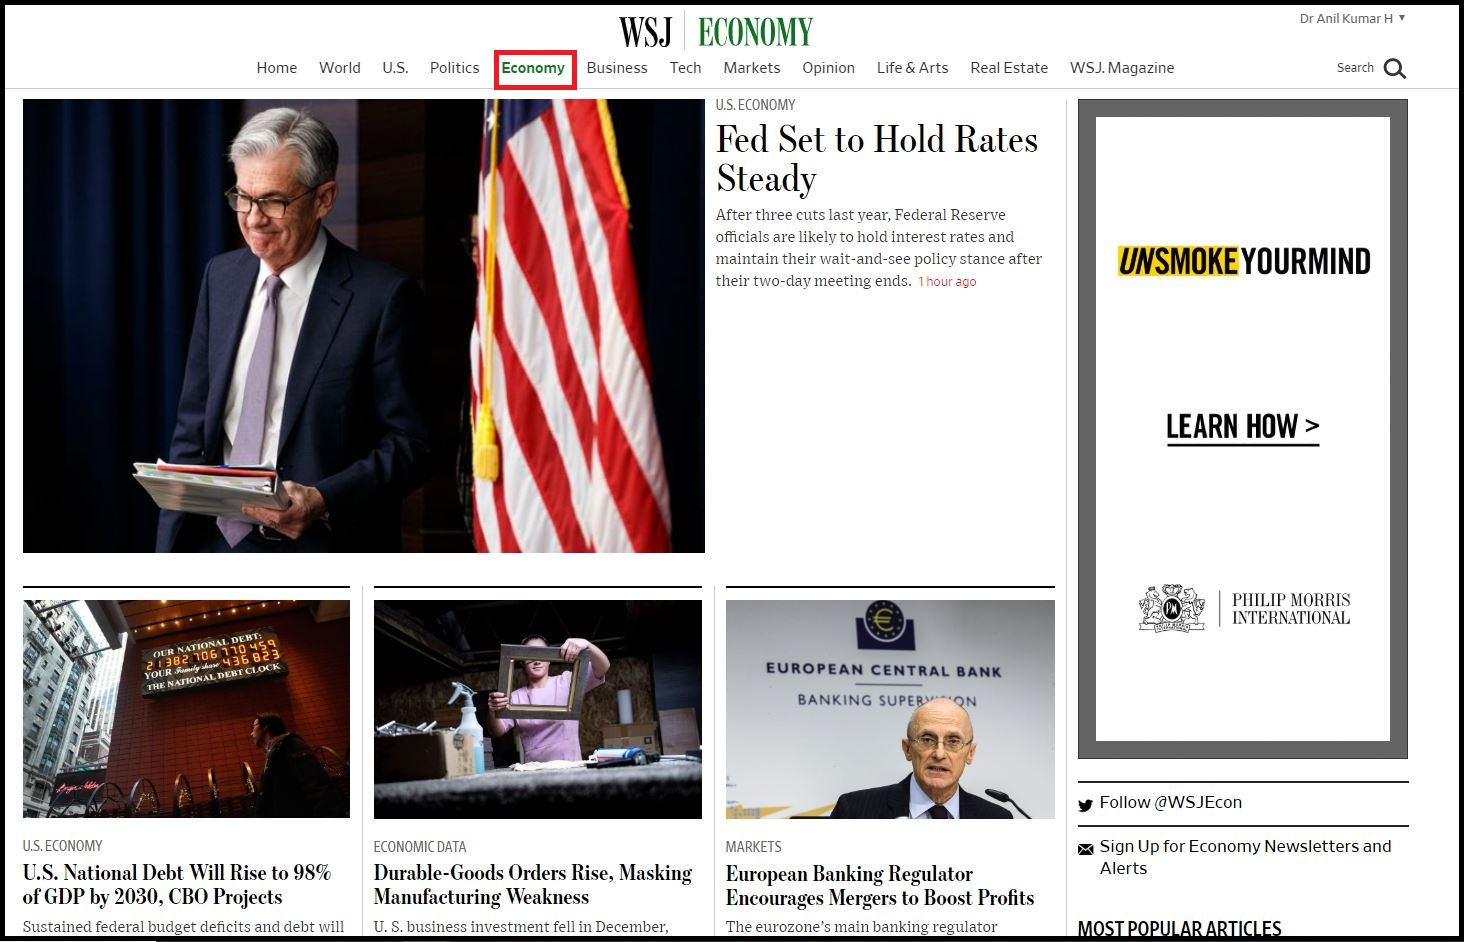 Open Wall Street Journal then Login with WSJ Credentials and Click on Economy